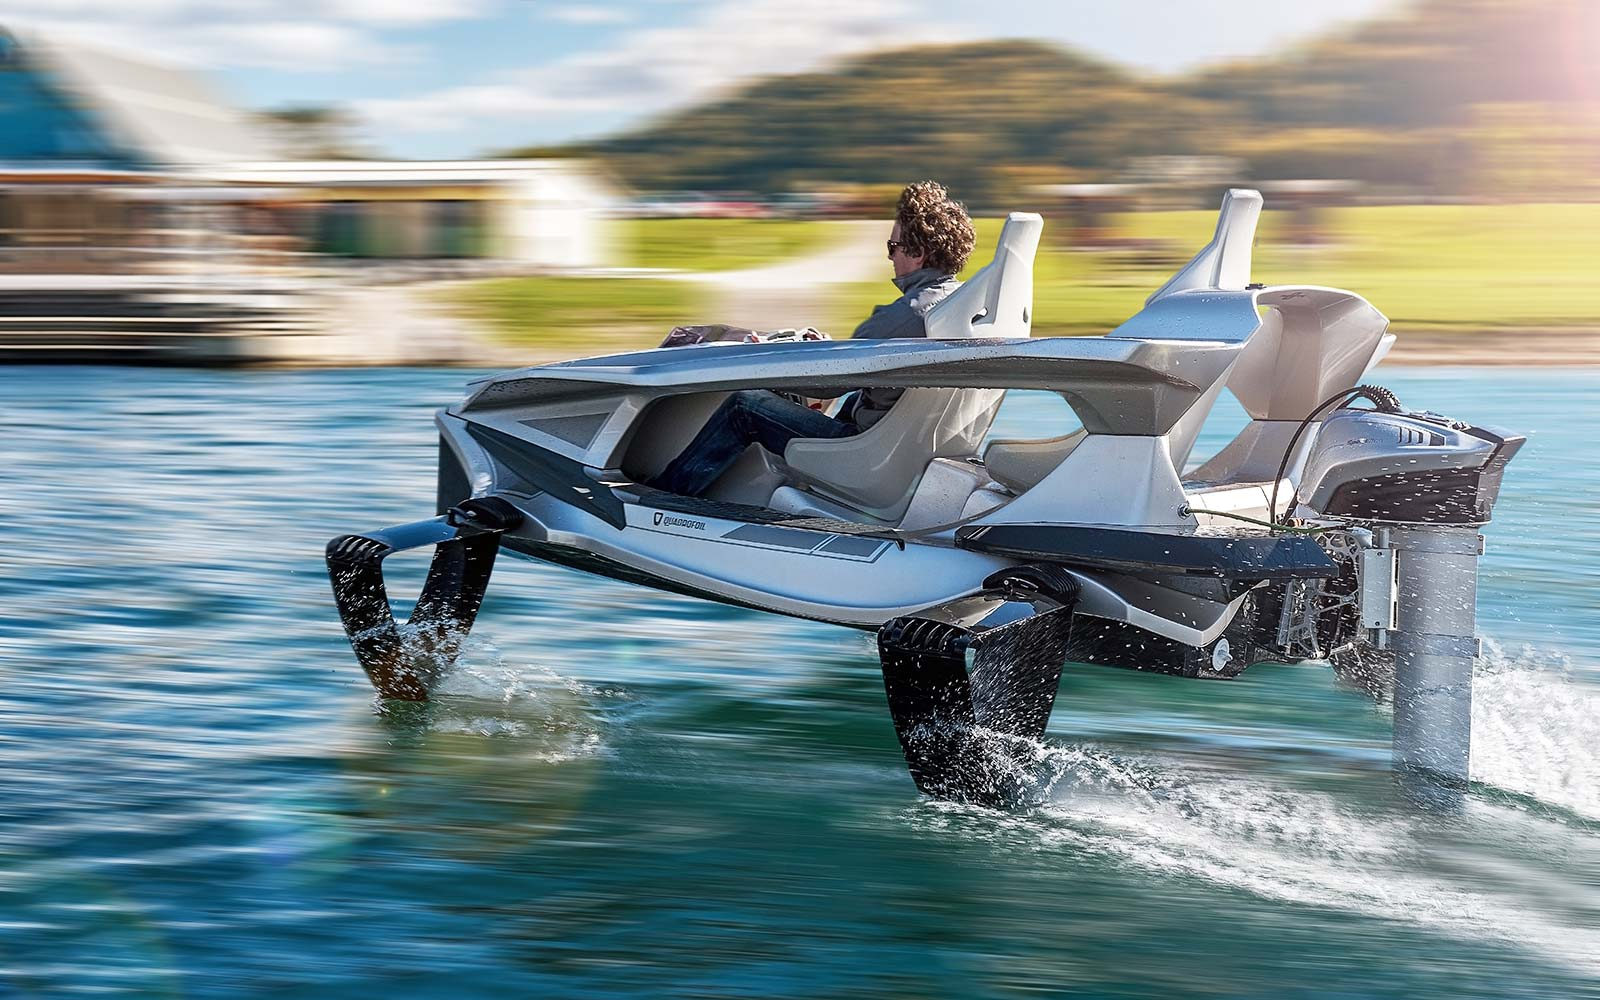 This New Watercraft Will Let You Glide Above the Water